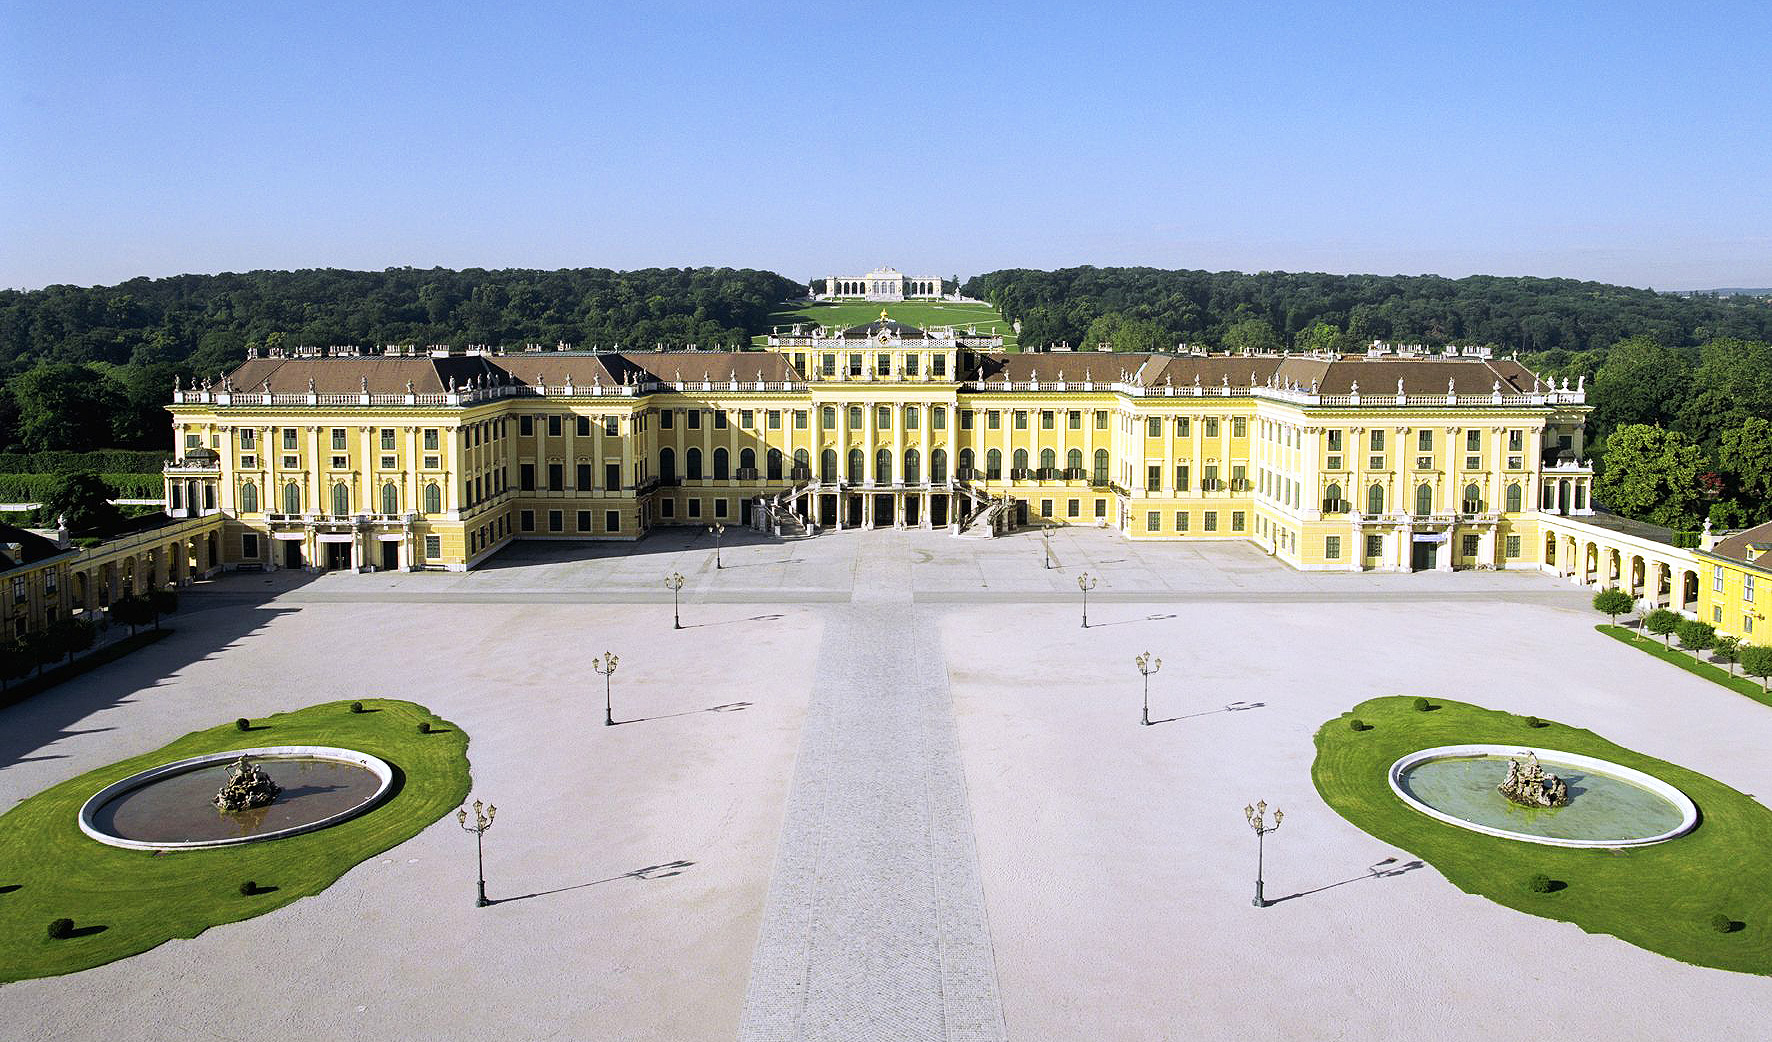 Experiencing A Very Royal Lifestyle at Schönbrunn Palace in Austria 3